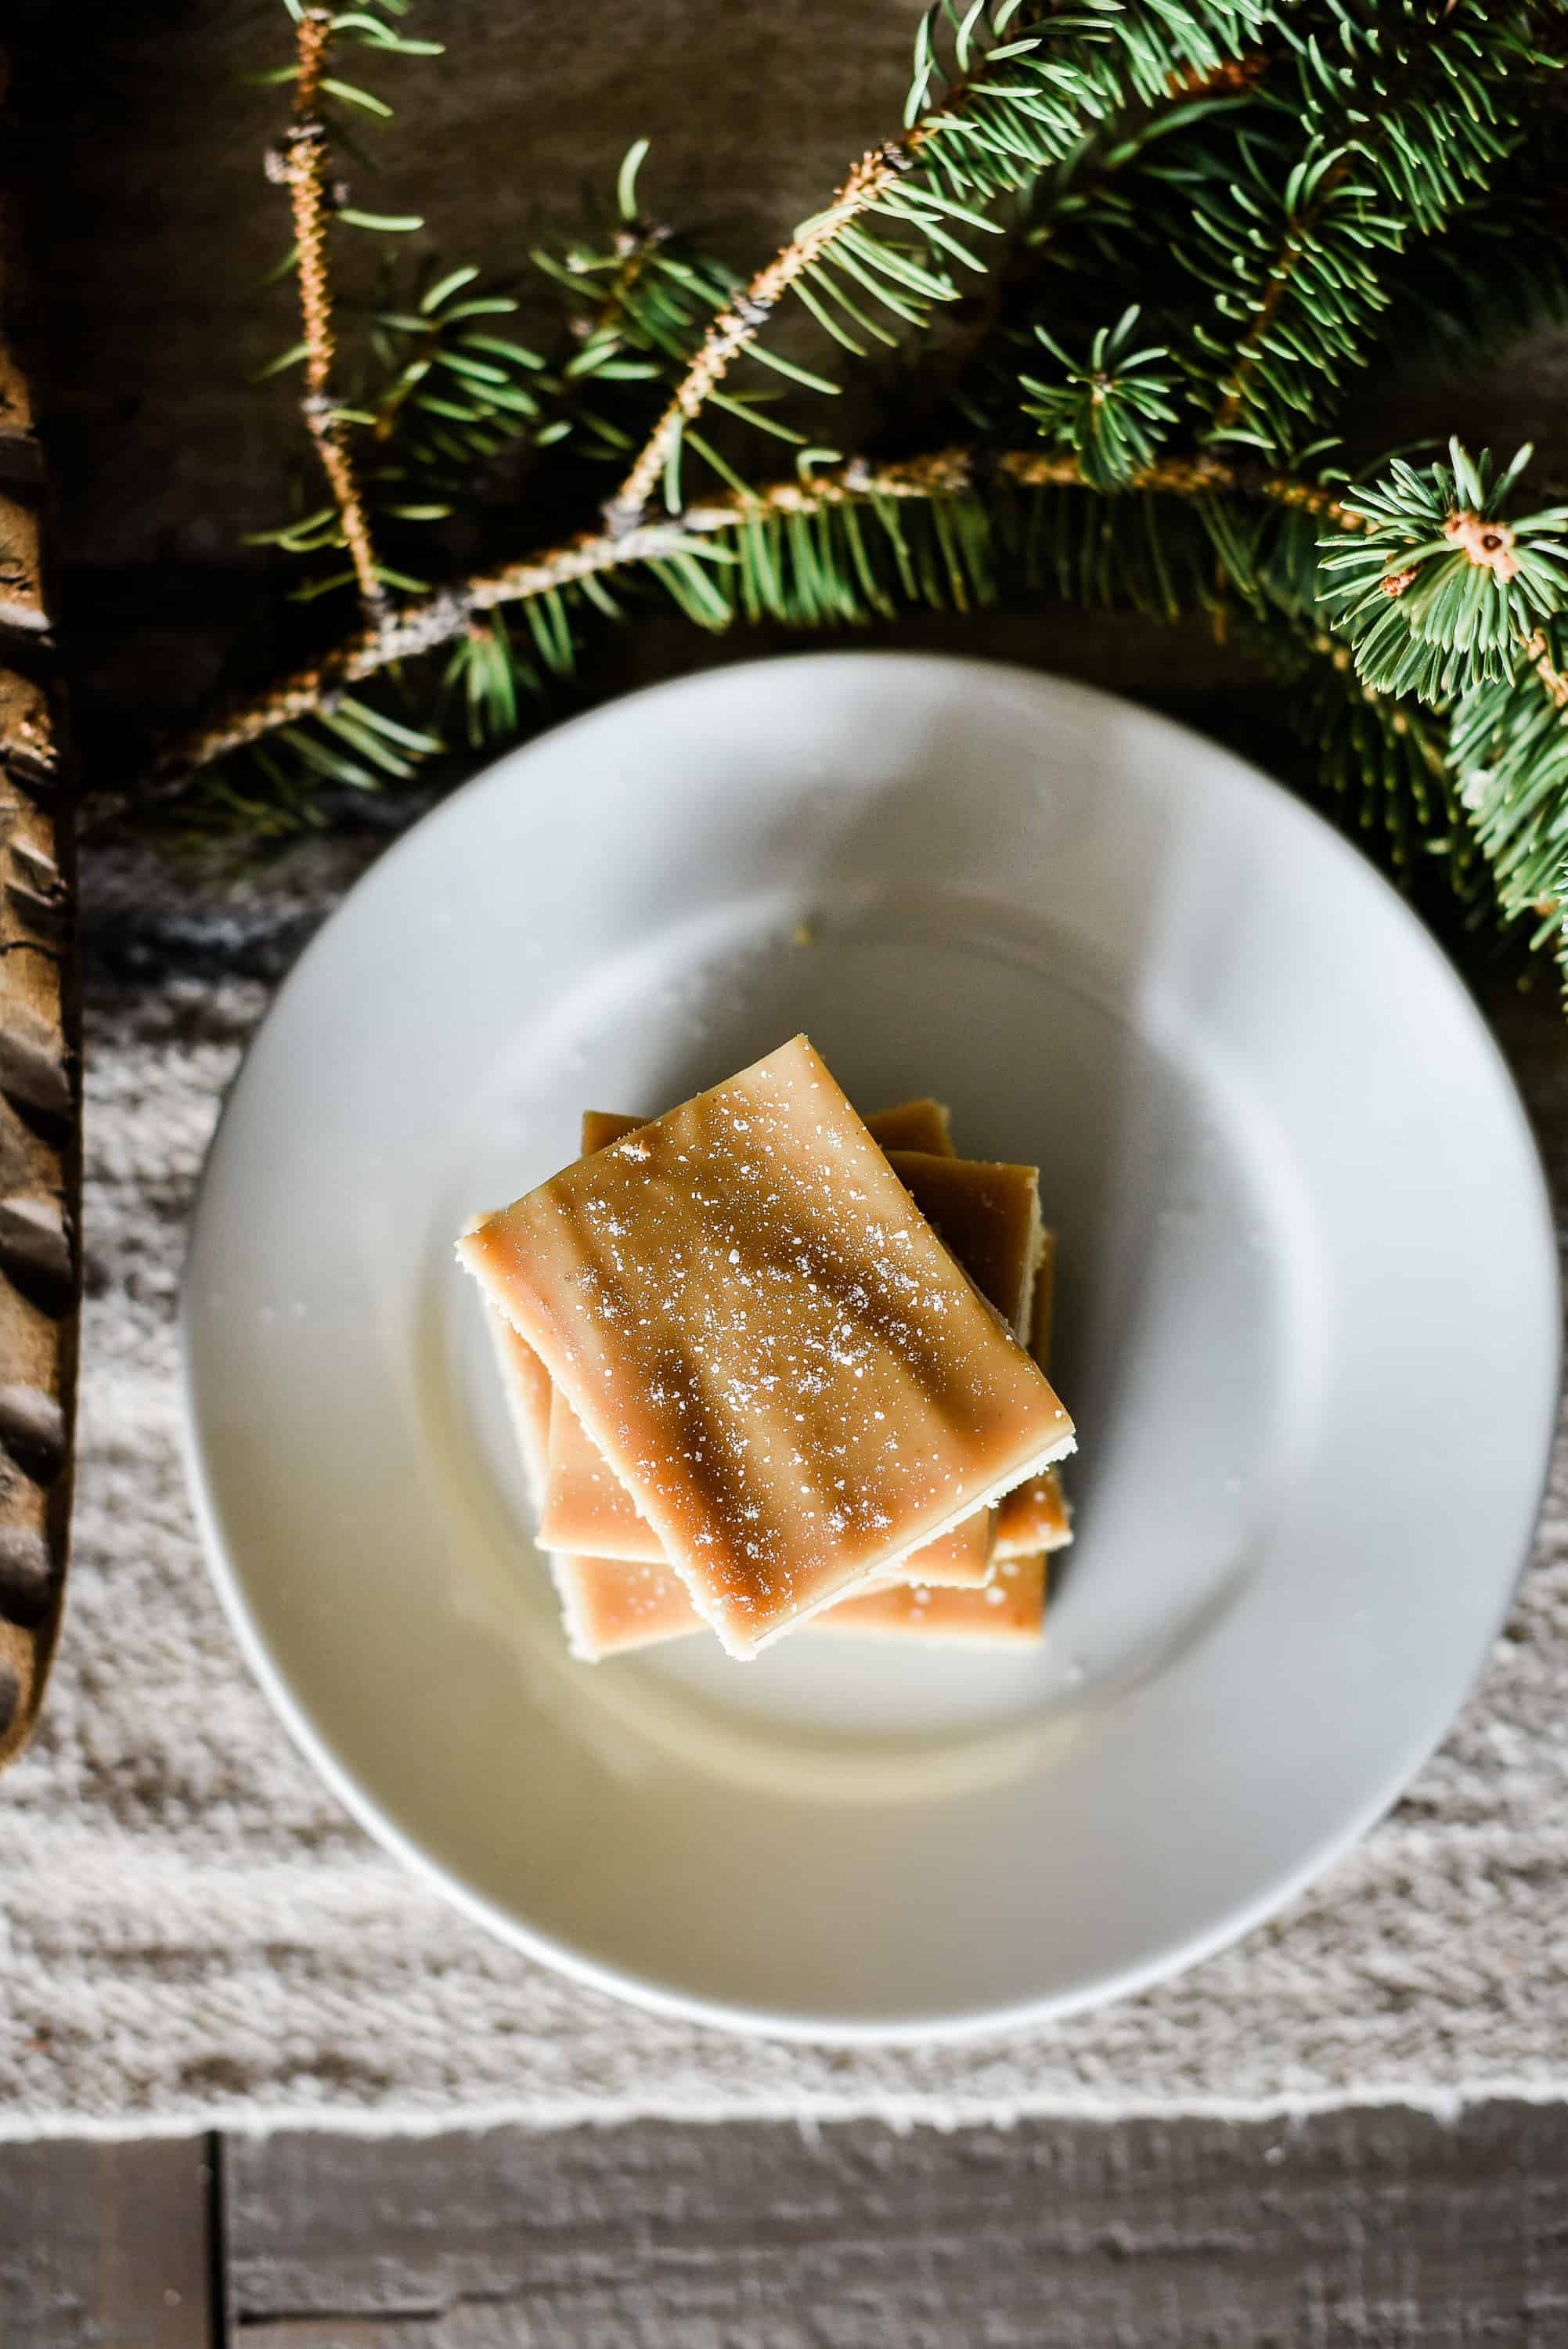 Need some new Christmas cookie recipes this year? Try one of these great recipes! Featuring salted caramel shortbread bars (that are dangerously delicious), be prepared for them to become a house favorite!